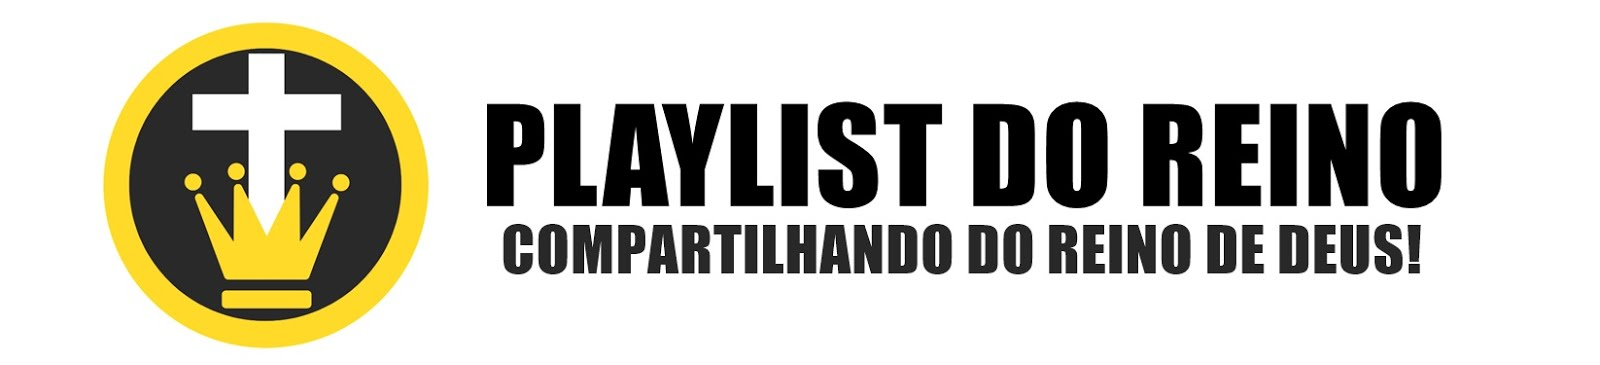 Playlist do Reino | Compartilhando do Reino de Deus!